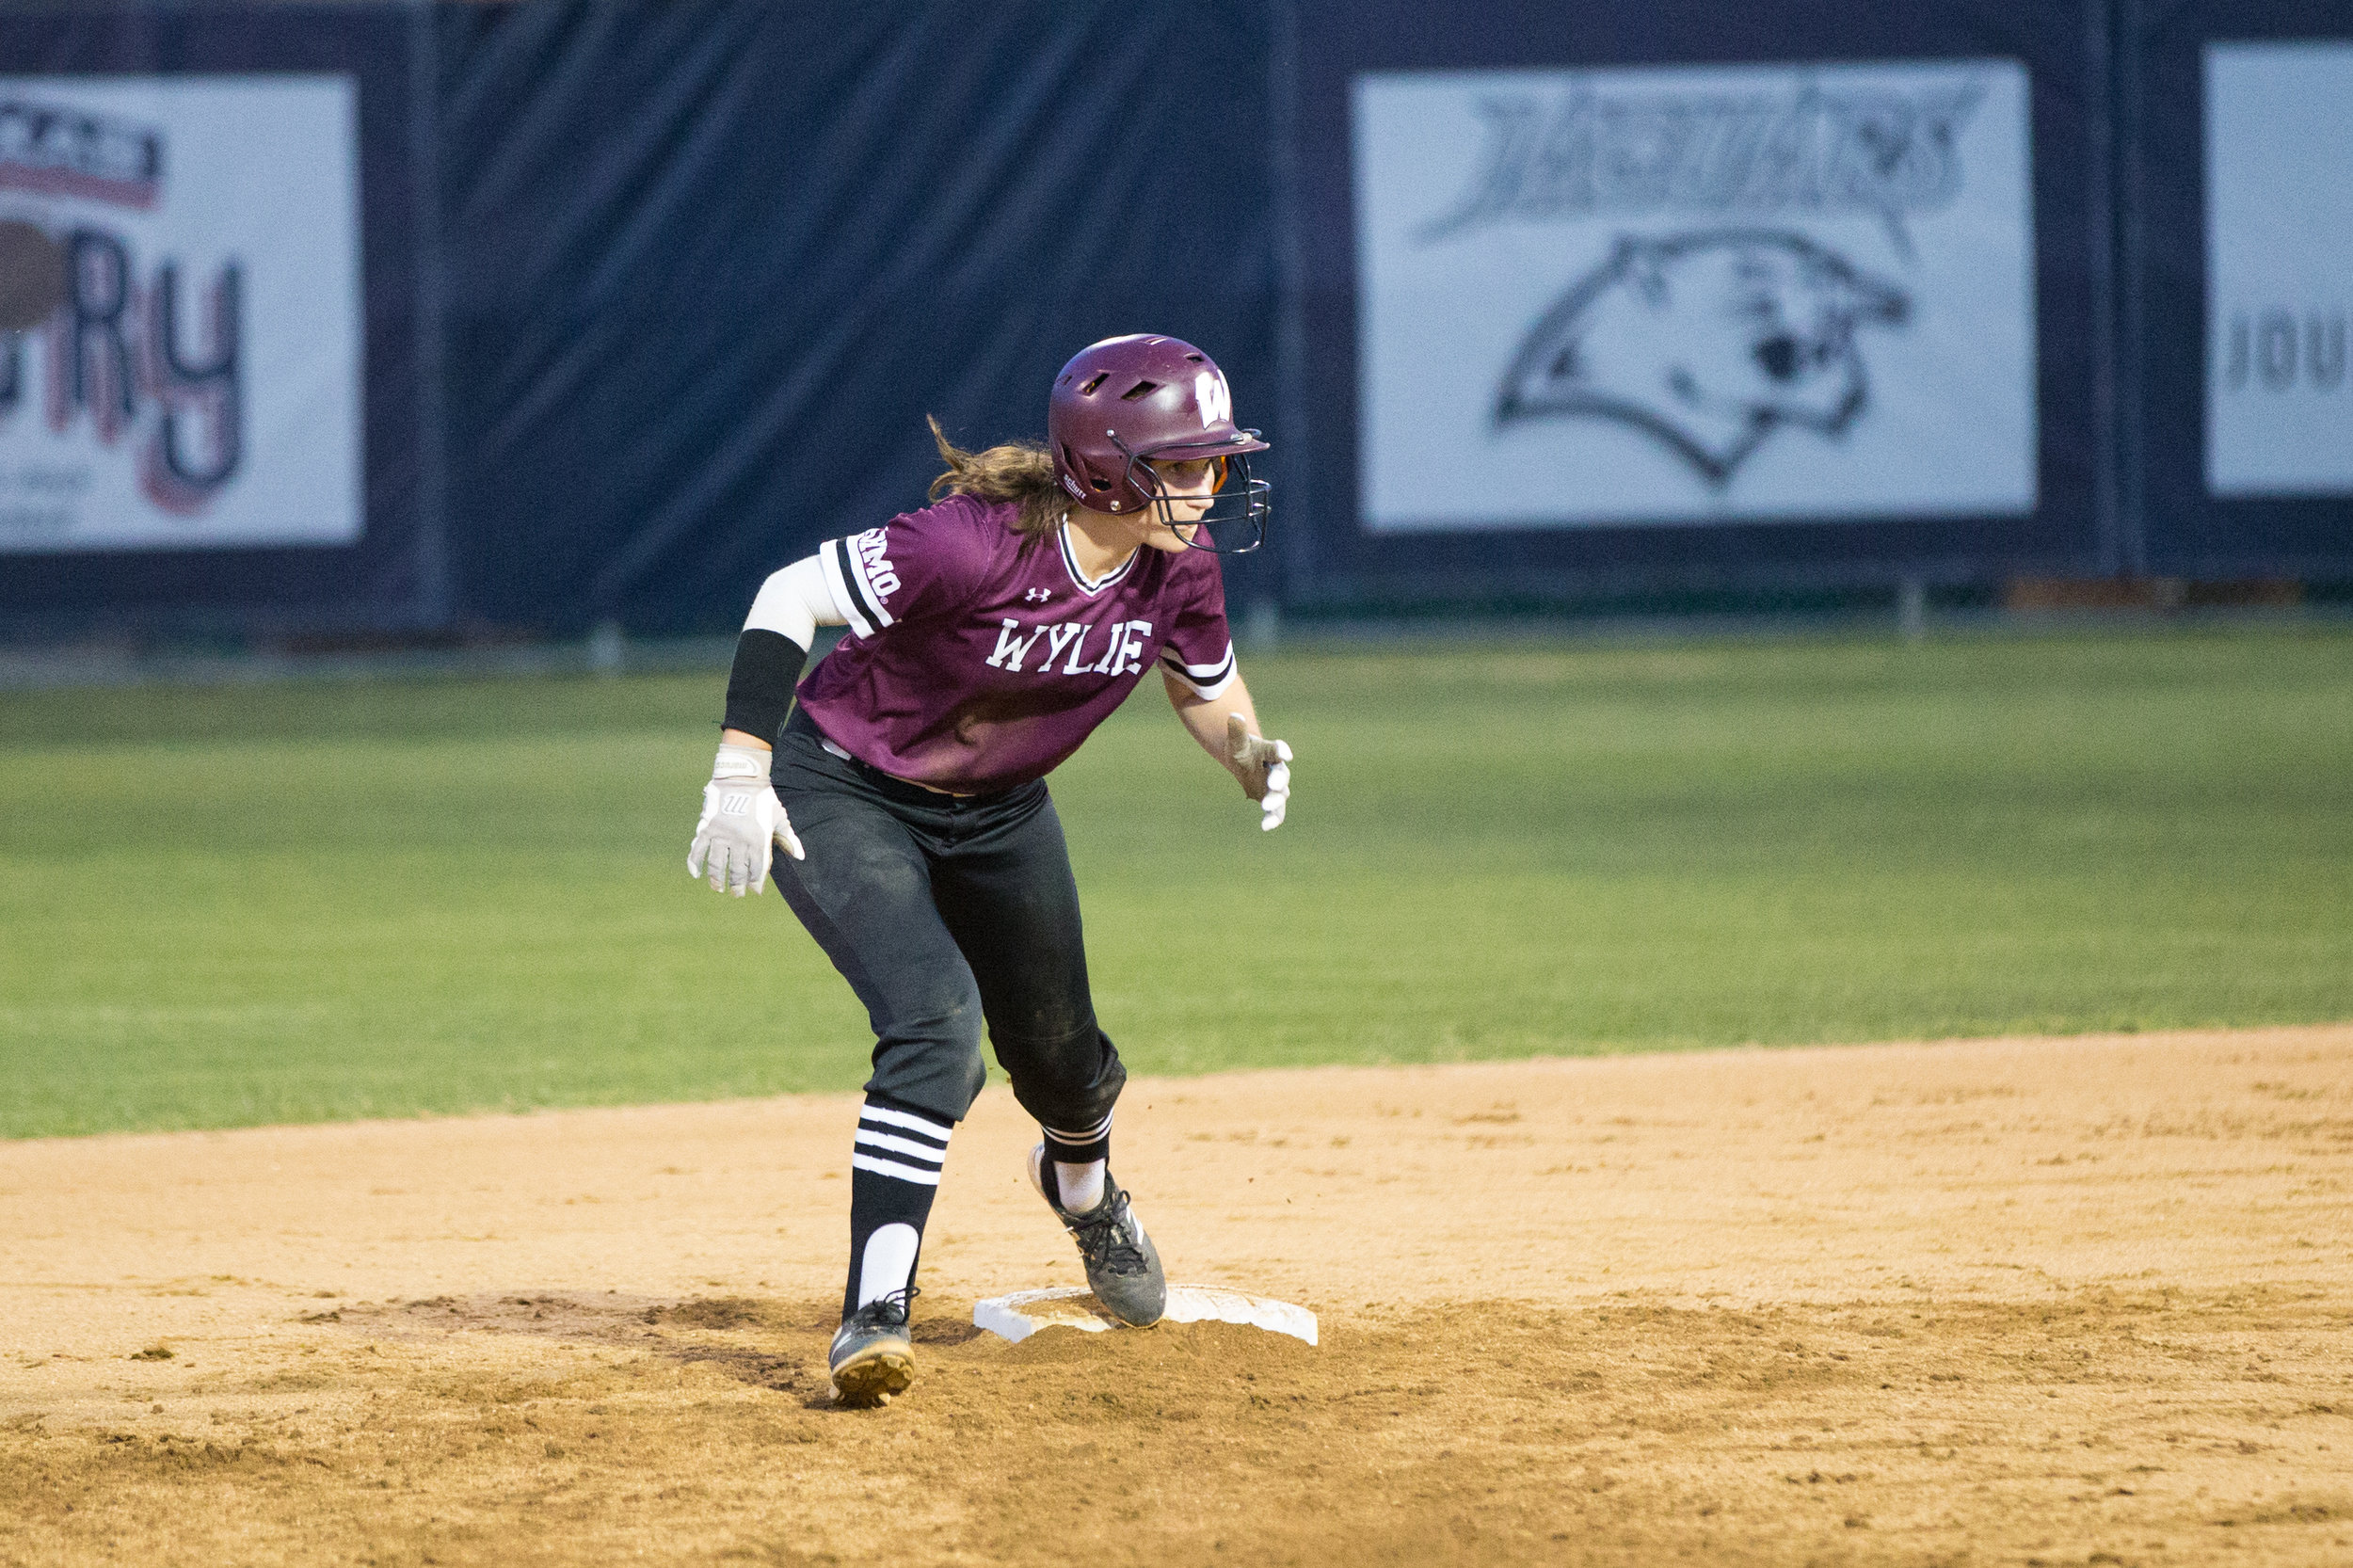 5_18 Wylie Softball-170.jpg